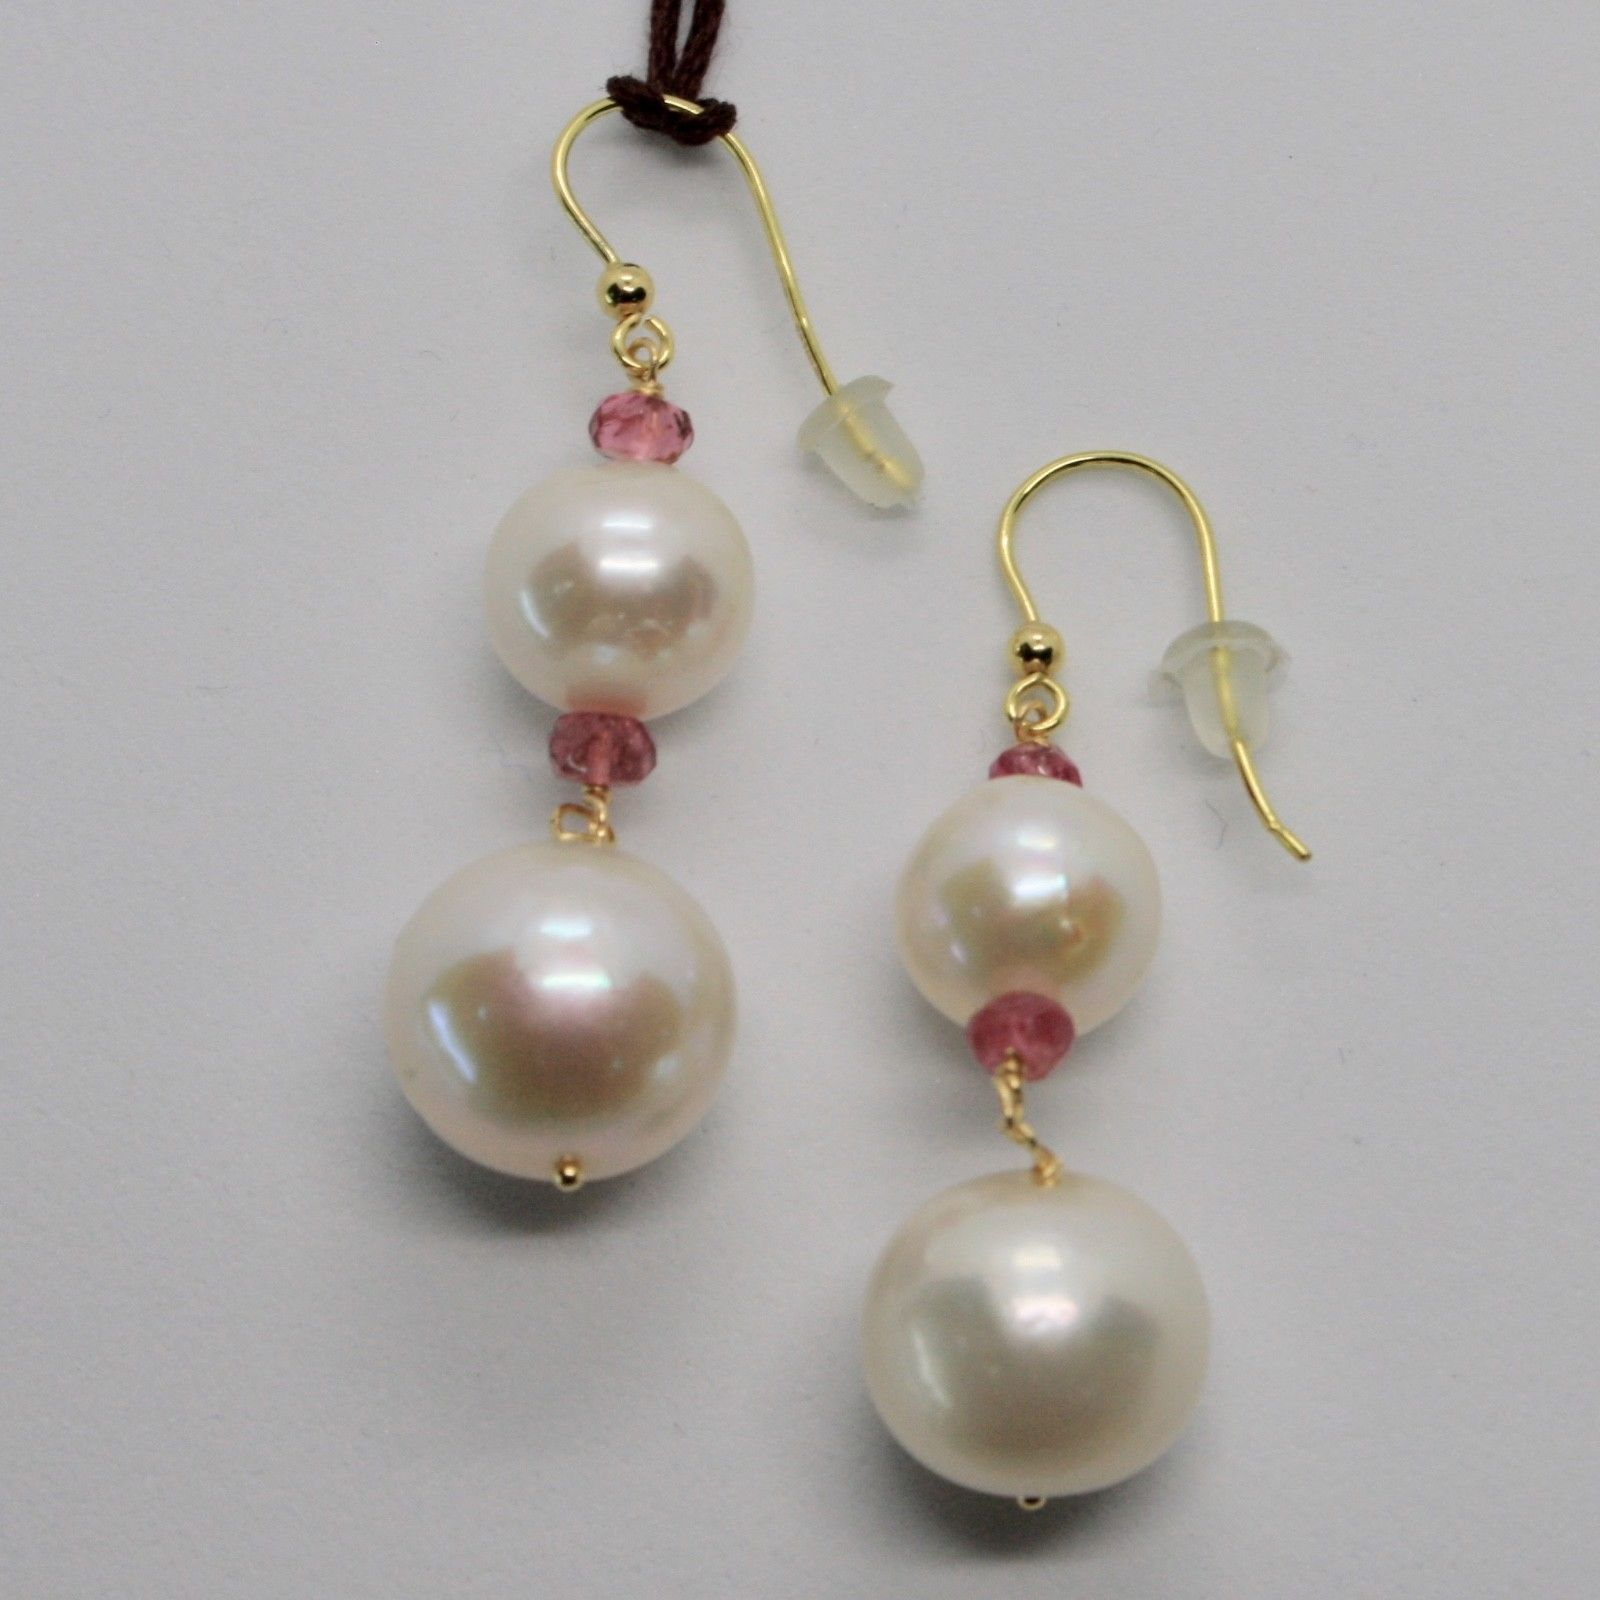 YELLOW GOLD EARRINGS 18K 750 PEARLS FRESH WATER TOURMALINE PINK MADE IN ITALY